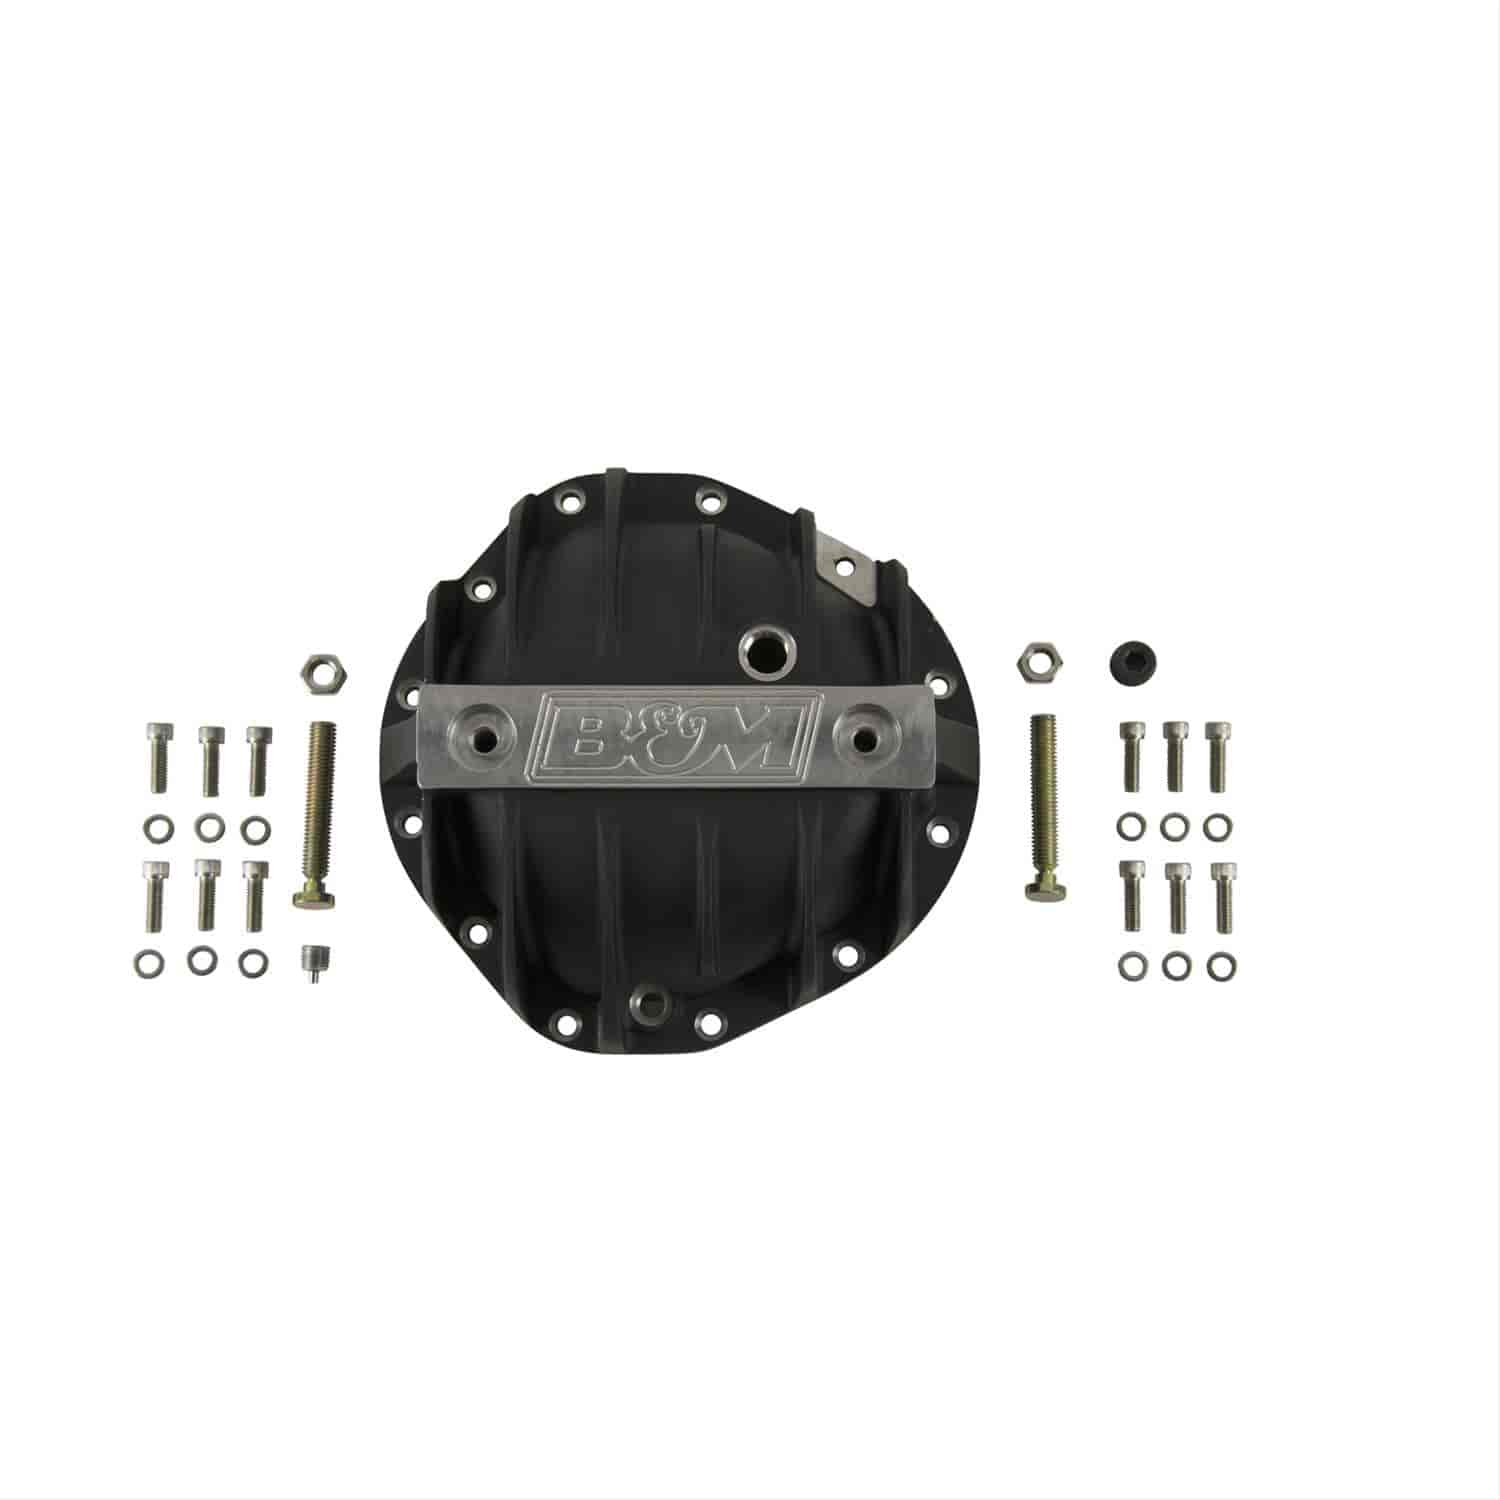 12 Bolt Incl Cover//Fill And Drain Plugs//Bolts//Washers//Load Bolts//Nuts Black Differential Cover B/&M 71504 Differential Cover For Use w//GM 8.875 in